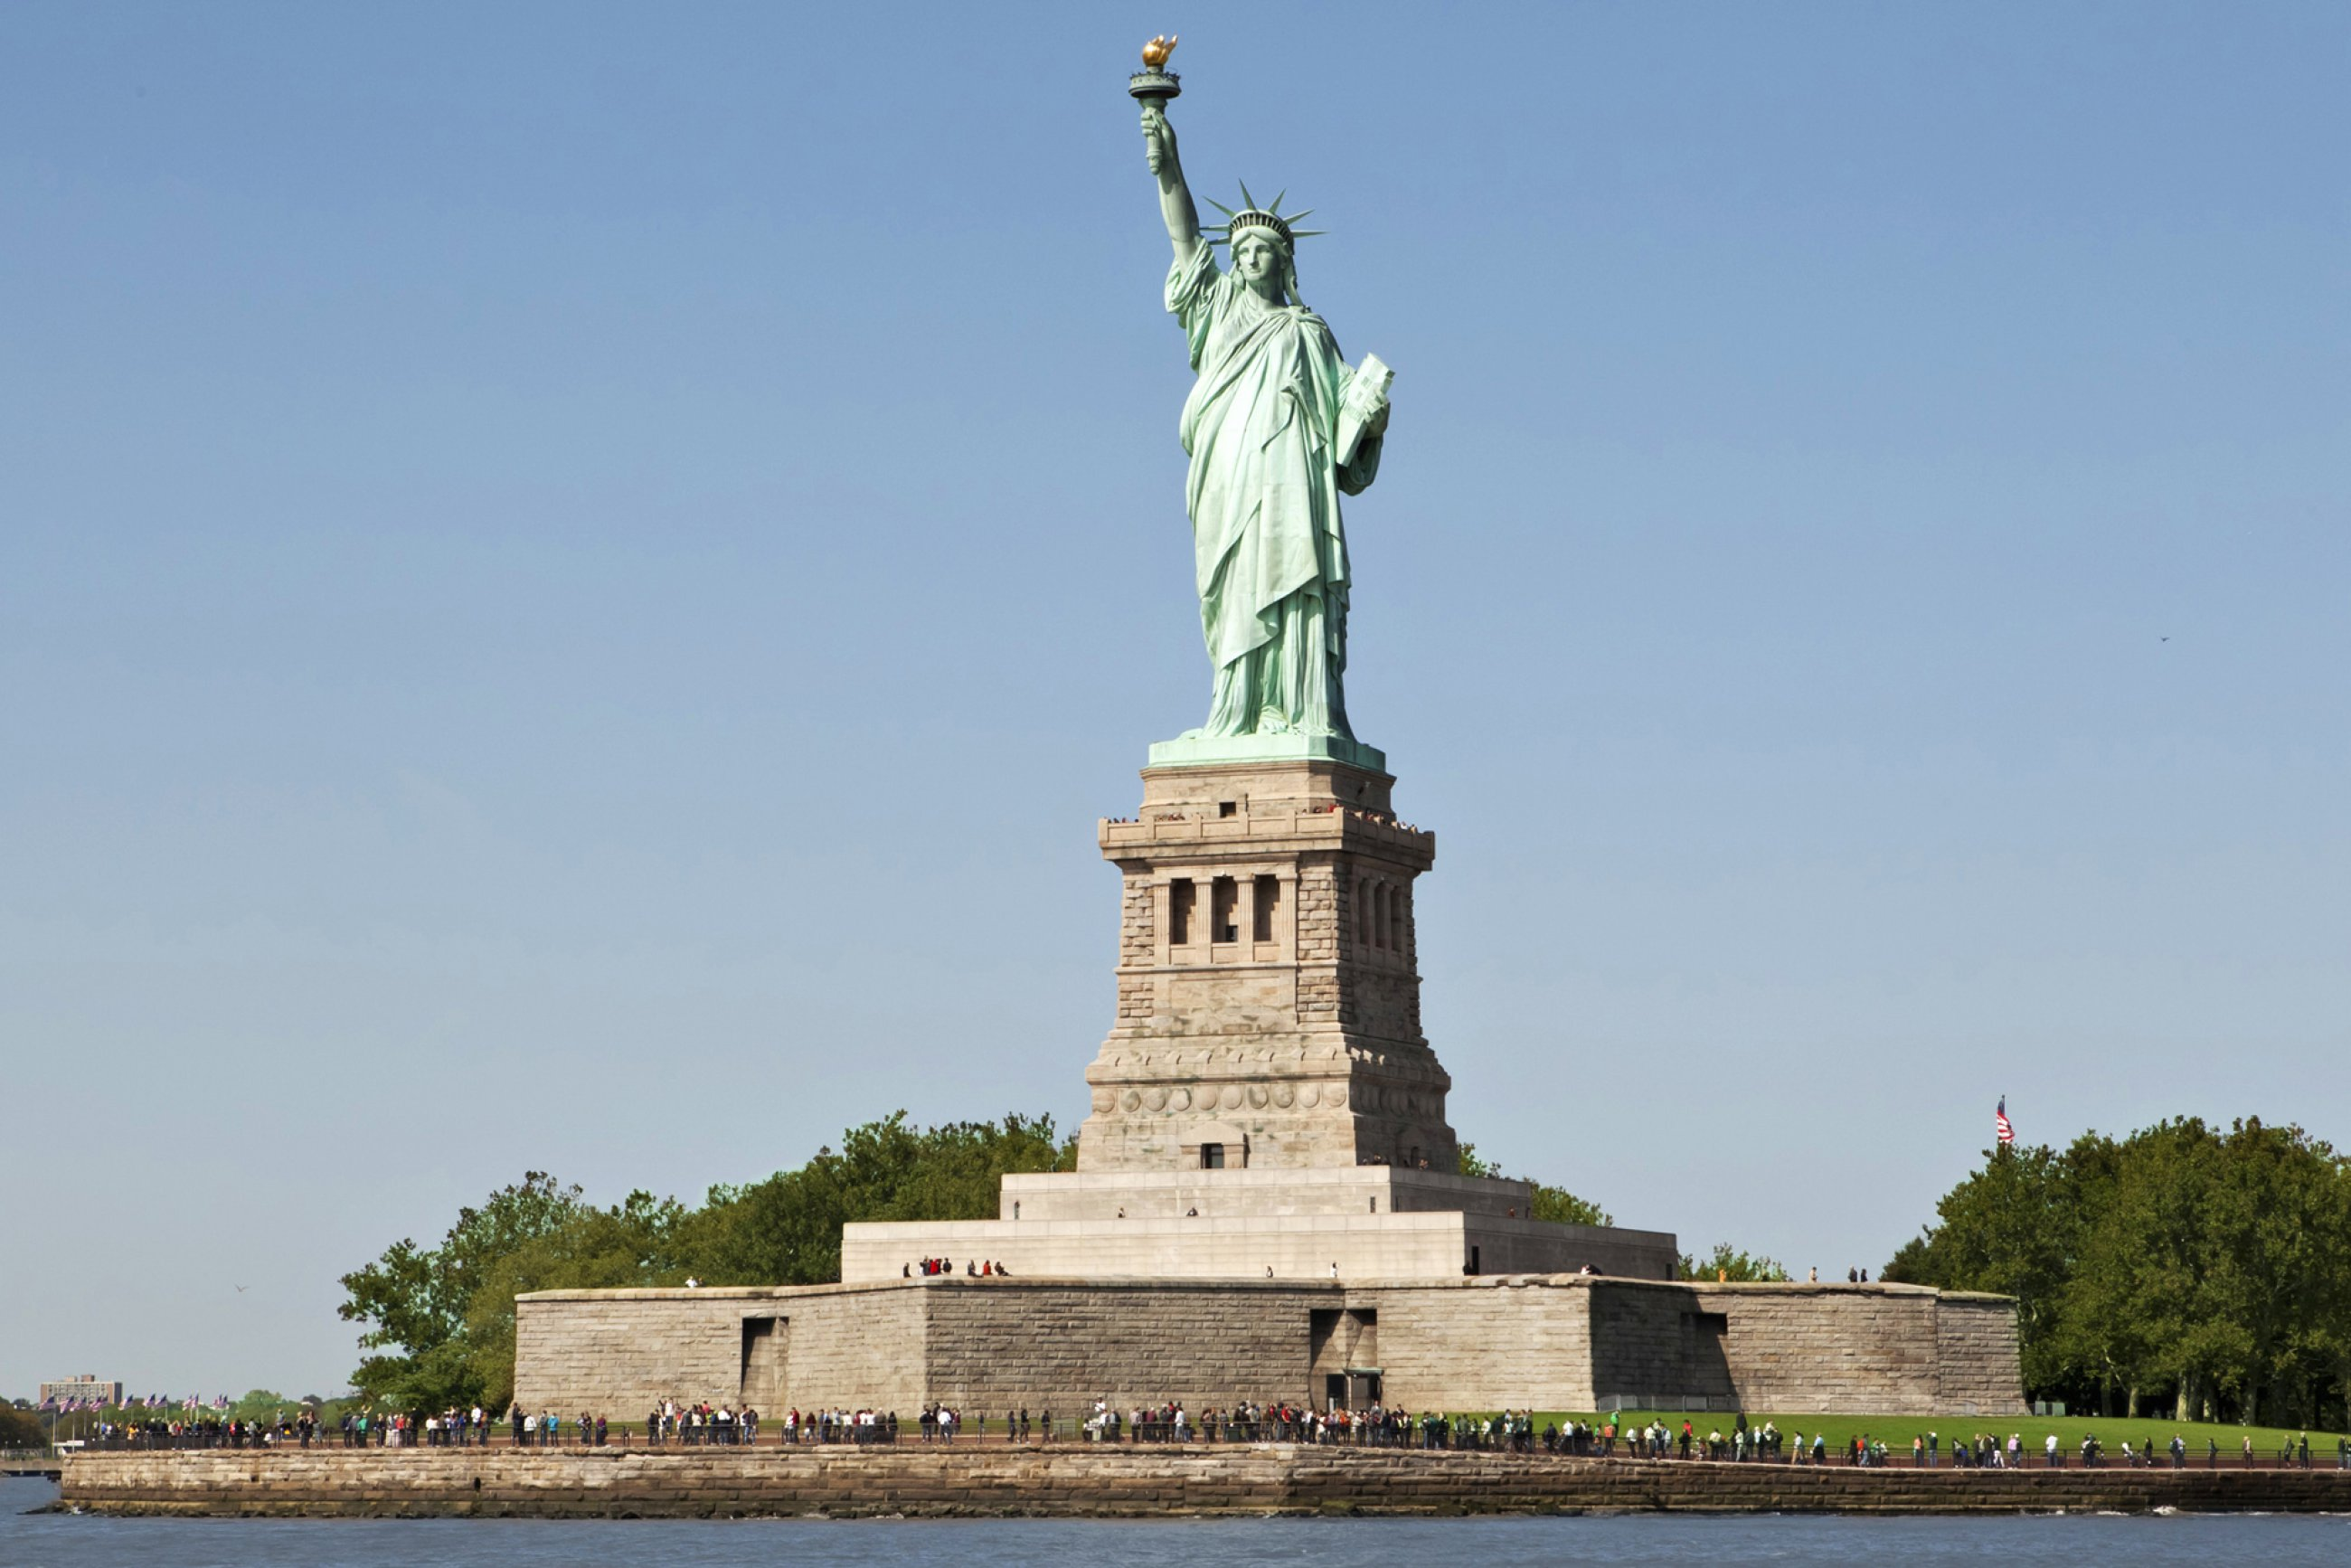 https://bubo.sk/uploads/galleries/7322/ny-statueofliberty-marleywhite-6467e.jpg